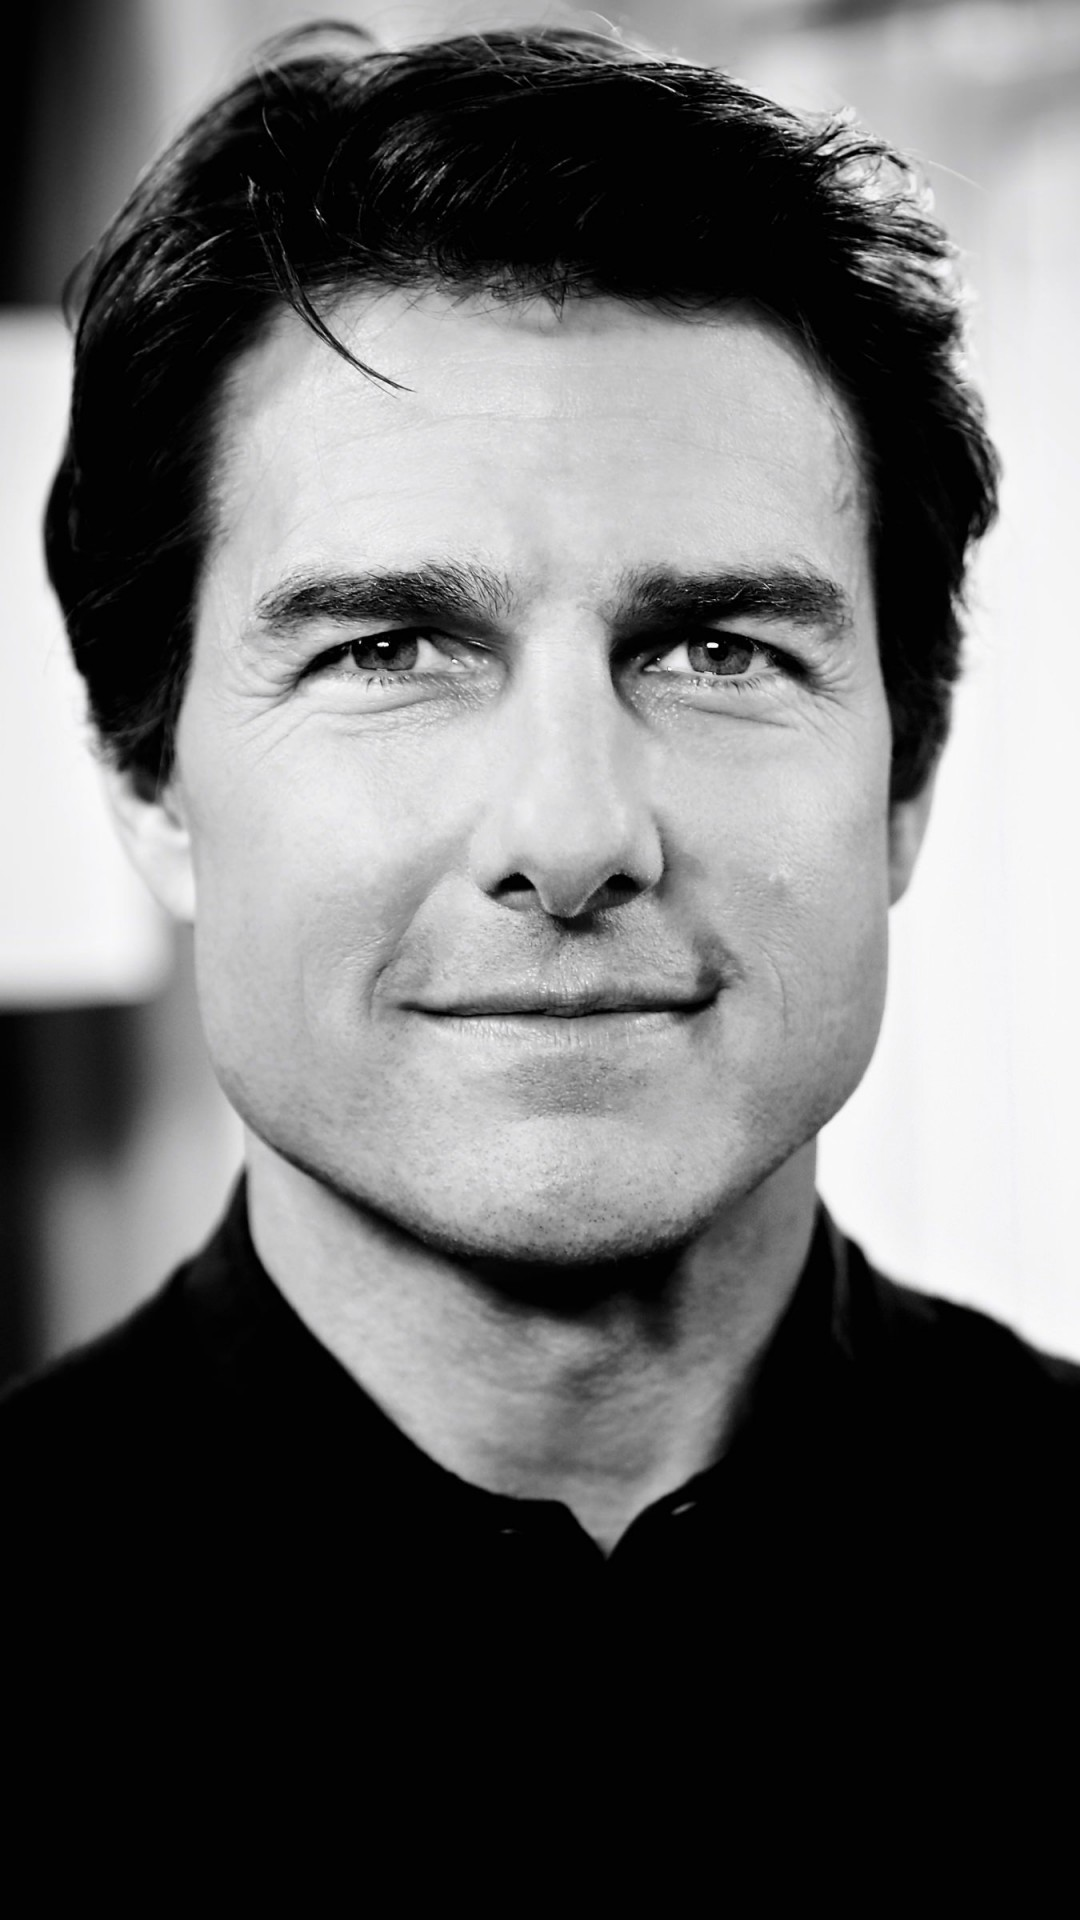 Tom Cruise Black & White Portrait Wallpaper for SAMSUNG Galaxy Note 3